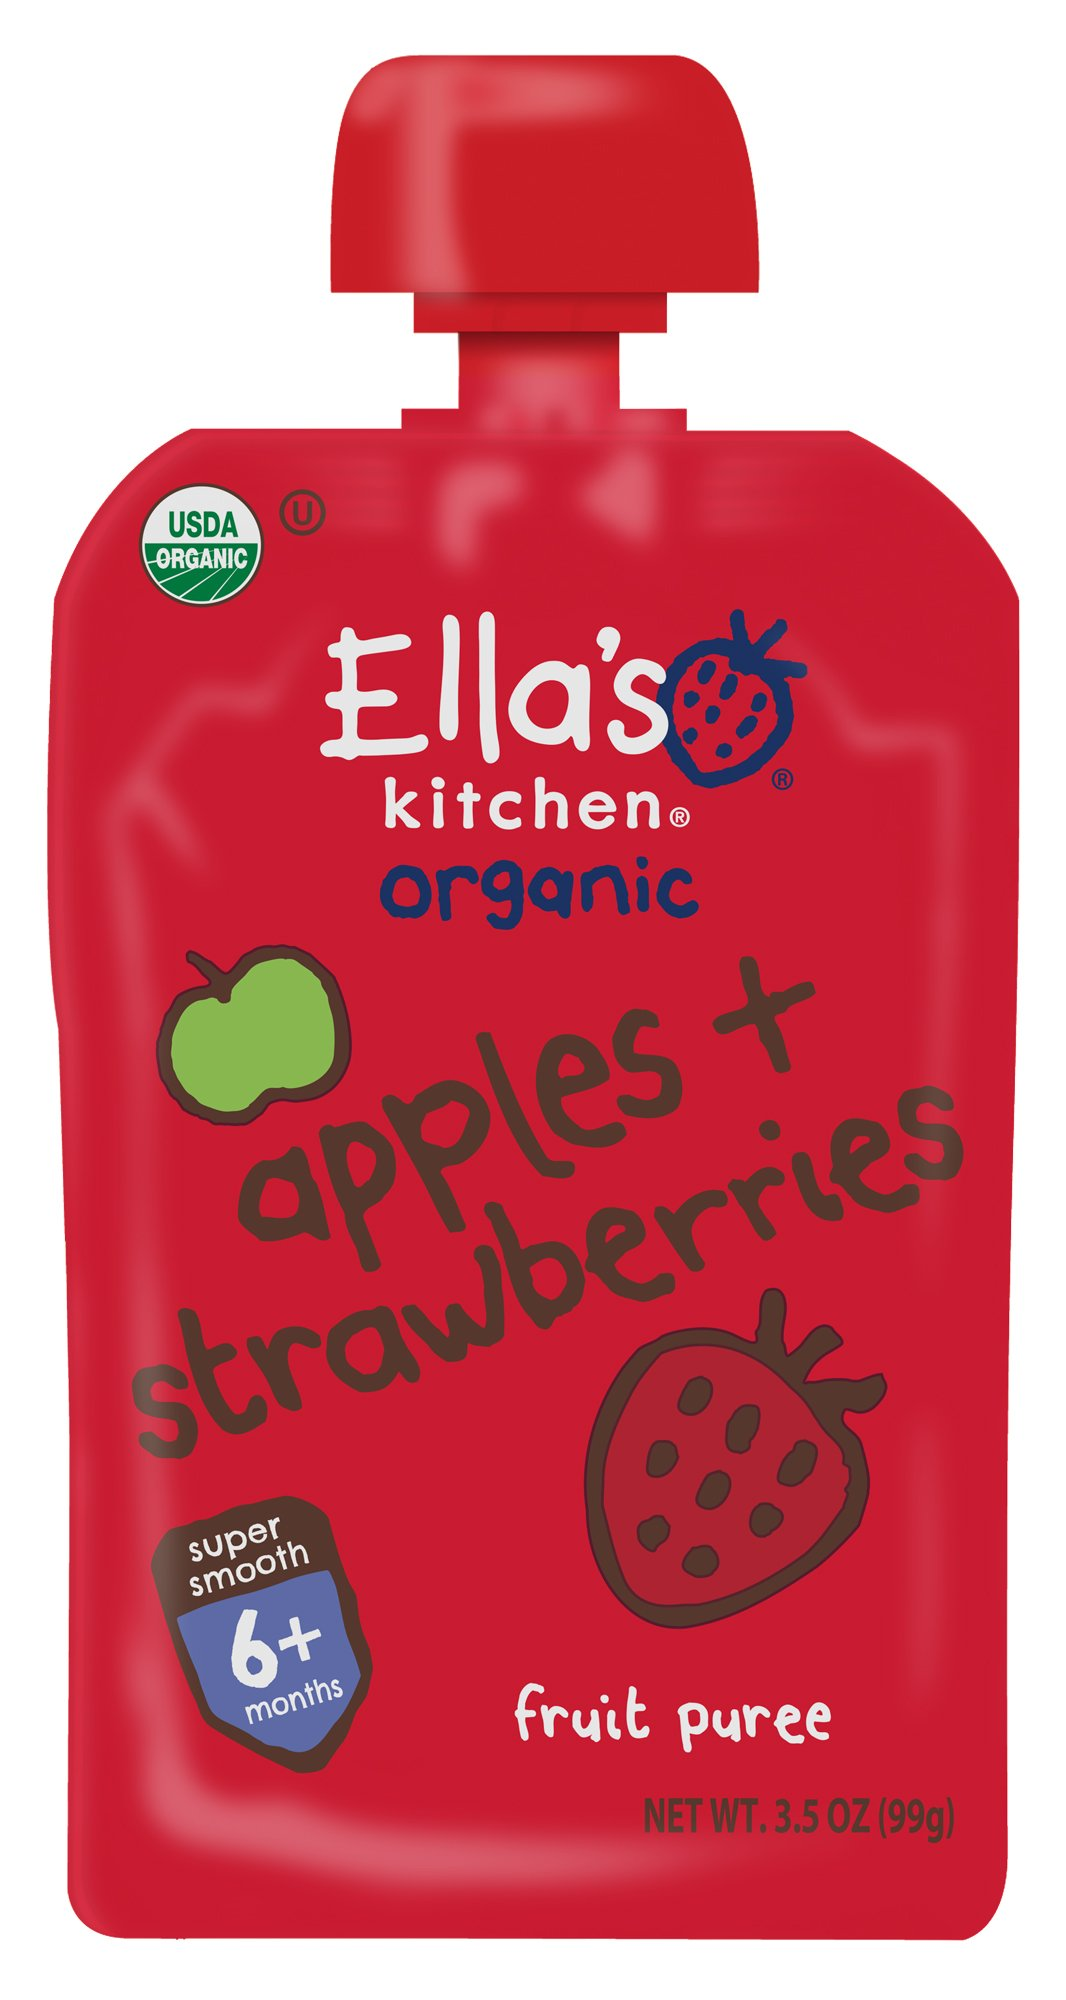 Ella's Kitchen 6+ Months Organic Baby Food, Apples + Strawberries, 3.5 oz. (Pack of 6)